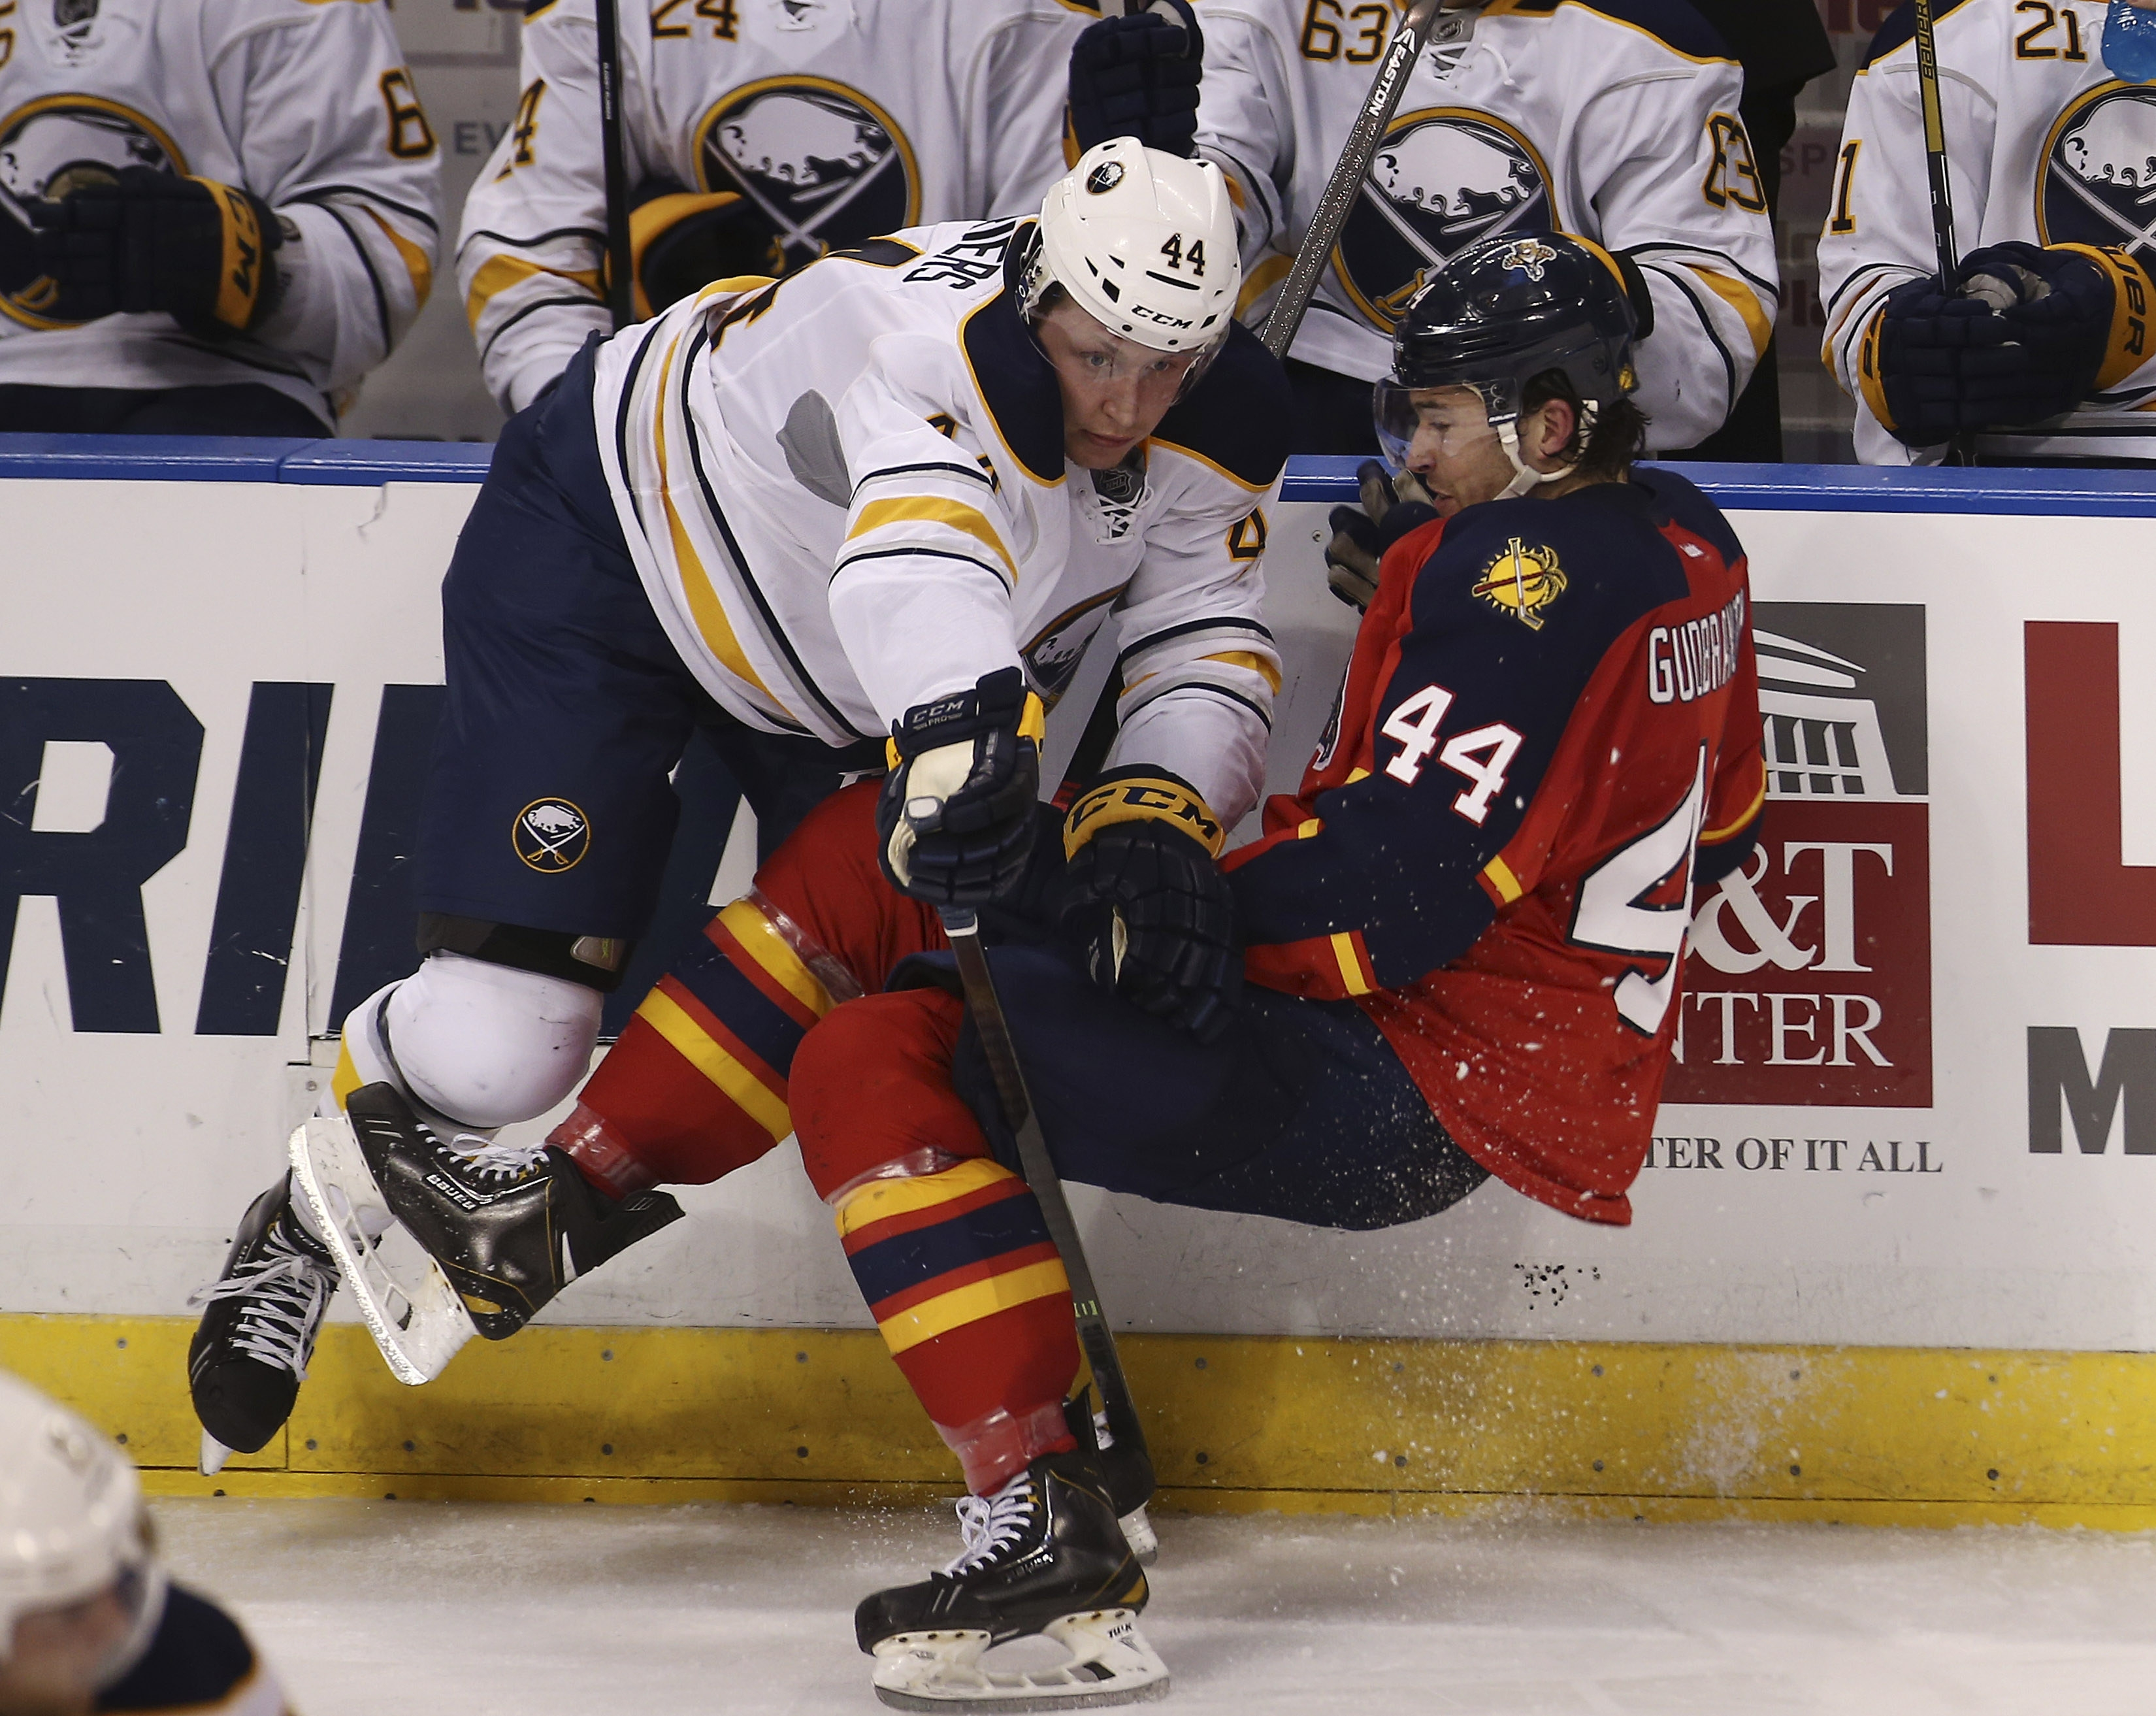 Buffalo Sabres' Nicolas Deslauriers (44) bowls over the Florida Panthers' Erik Gudbranson (44) during the third period in Deslauriers' NHL debut.